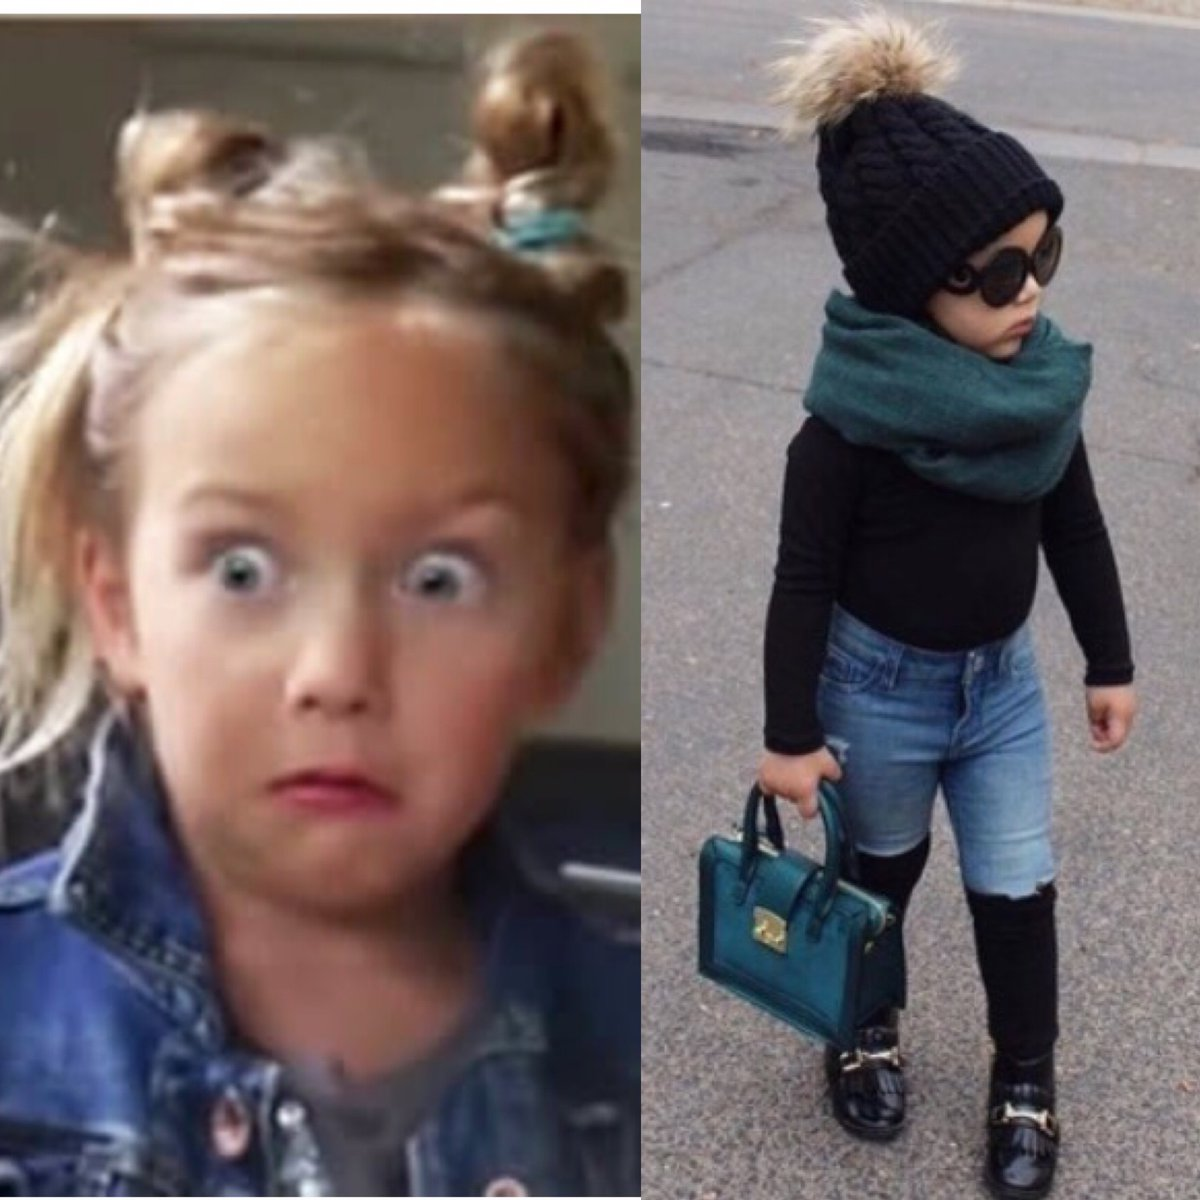 Me waking up for work at 4A vs me headed to the airport for a vaca at 4A.